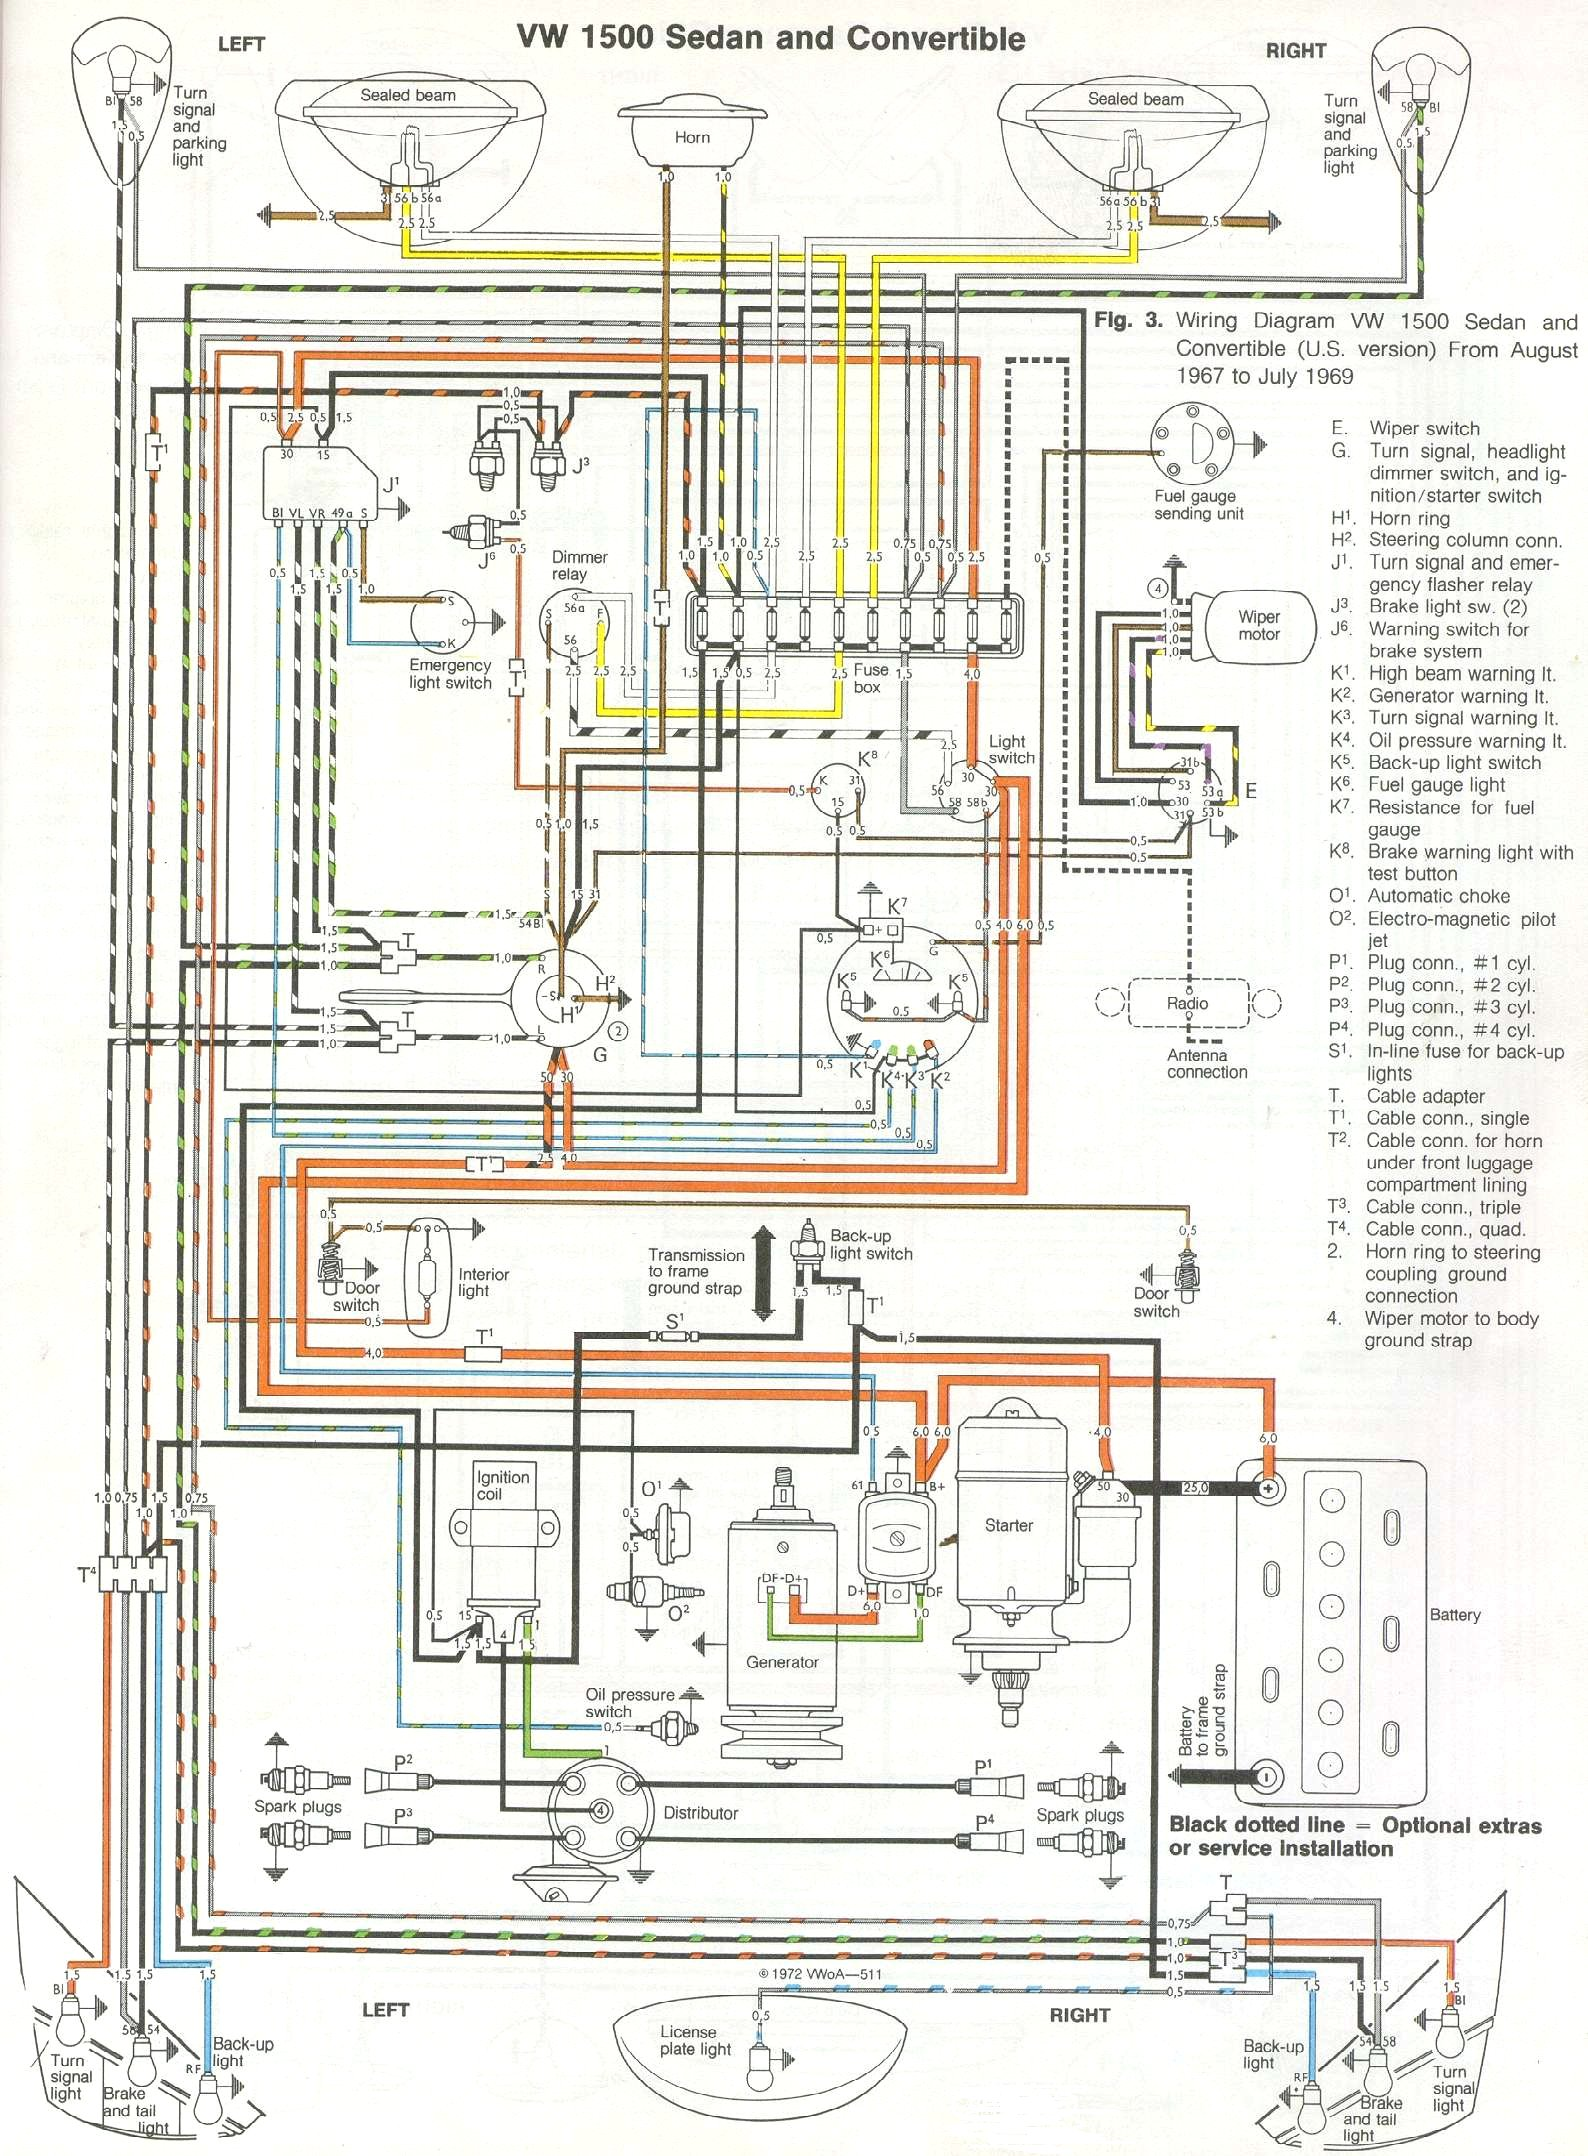 bug_6869 vw wiring harness diagram cj7 wiring harness diagram \u2022 wiring 1971 vw bus wiring diagram at bakdesigns.co